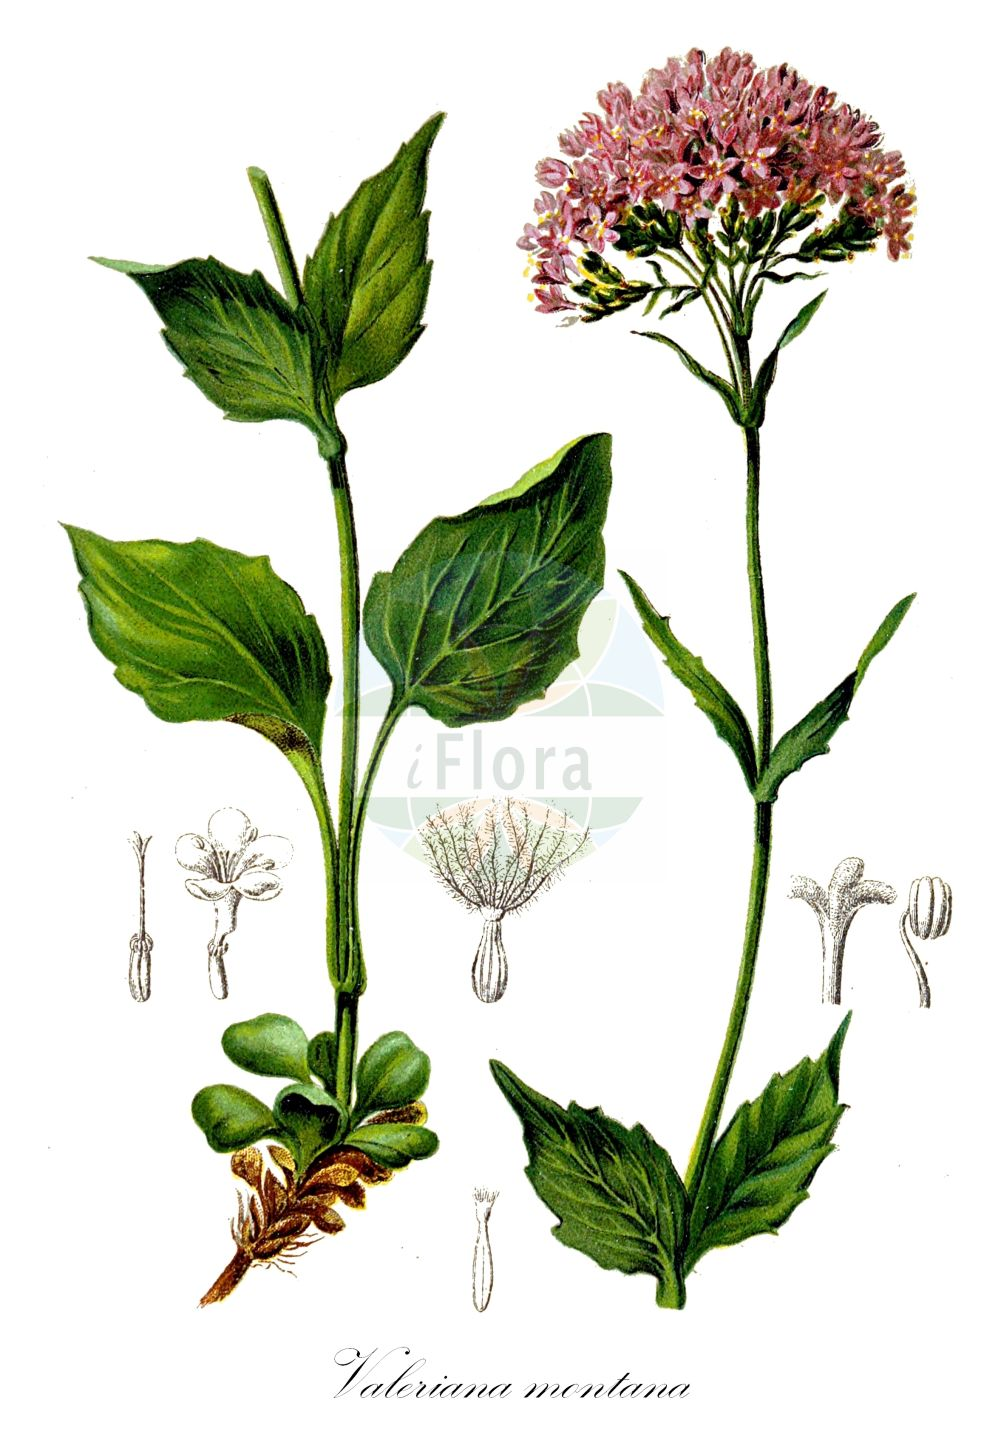 Historische Abbildung von Valeriana montana (Berg-Baldrian - Mountain Valerian). Das Bild zeigt Blatt, Bluete, Frucht und Same. ---- Historical Drawing of Valeriana montana (Berg-Baldrian - Mountain Valerian).The image is showing leaf, flower, fruit and seed.(Valeriana montana,Berg-Baldrian,Mountain Valerian,Valeriana,Baldrian,Valerian,Caprifoliaceae,Geissblattgewaechse,Honeysuckle family,Blatt,Bluete,Frucht,Same,leaf,flower,fruit,seed,Hartinger & von Dalla Torre (1806f))